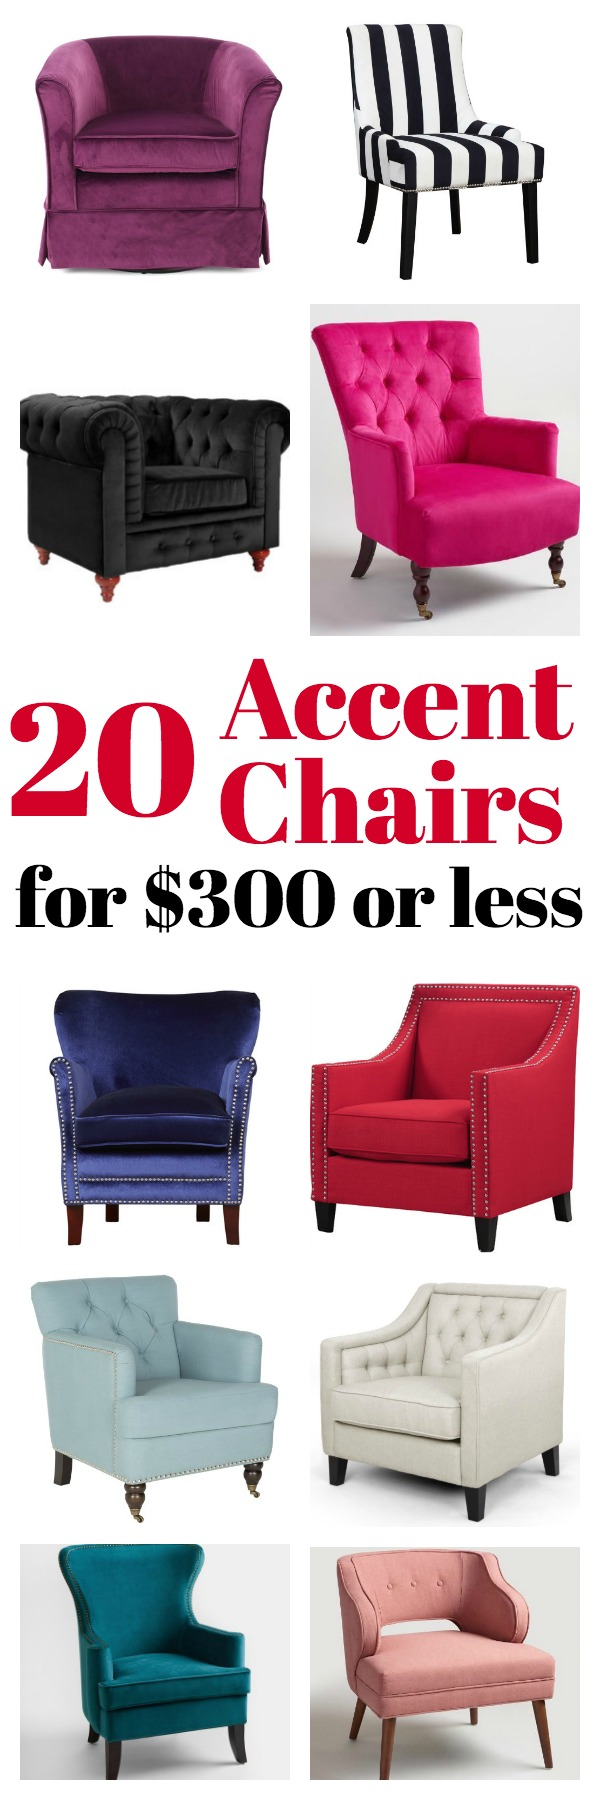 Affordable Accent Chairs For $300 Or Less | Accent Chairs For Living Room | Upholstered  Chairs